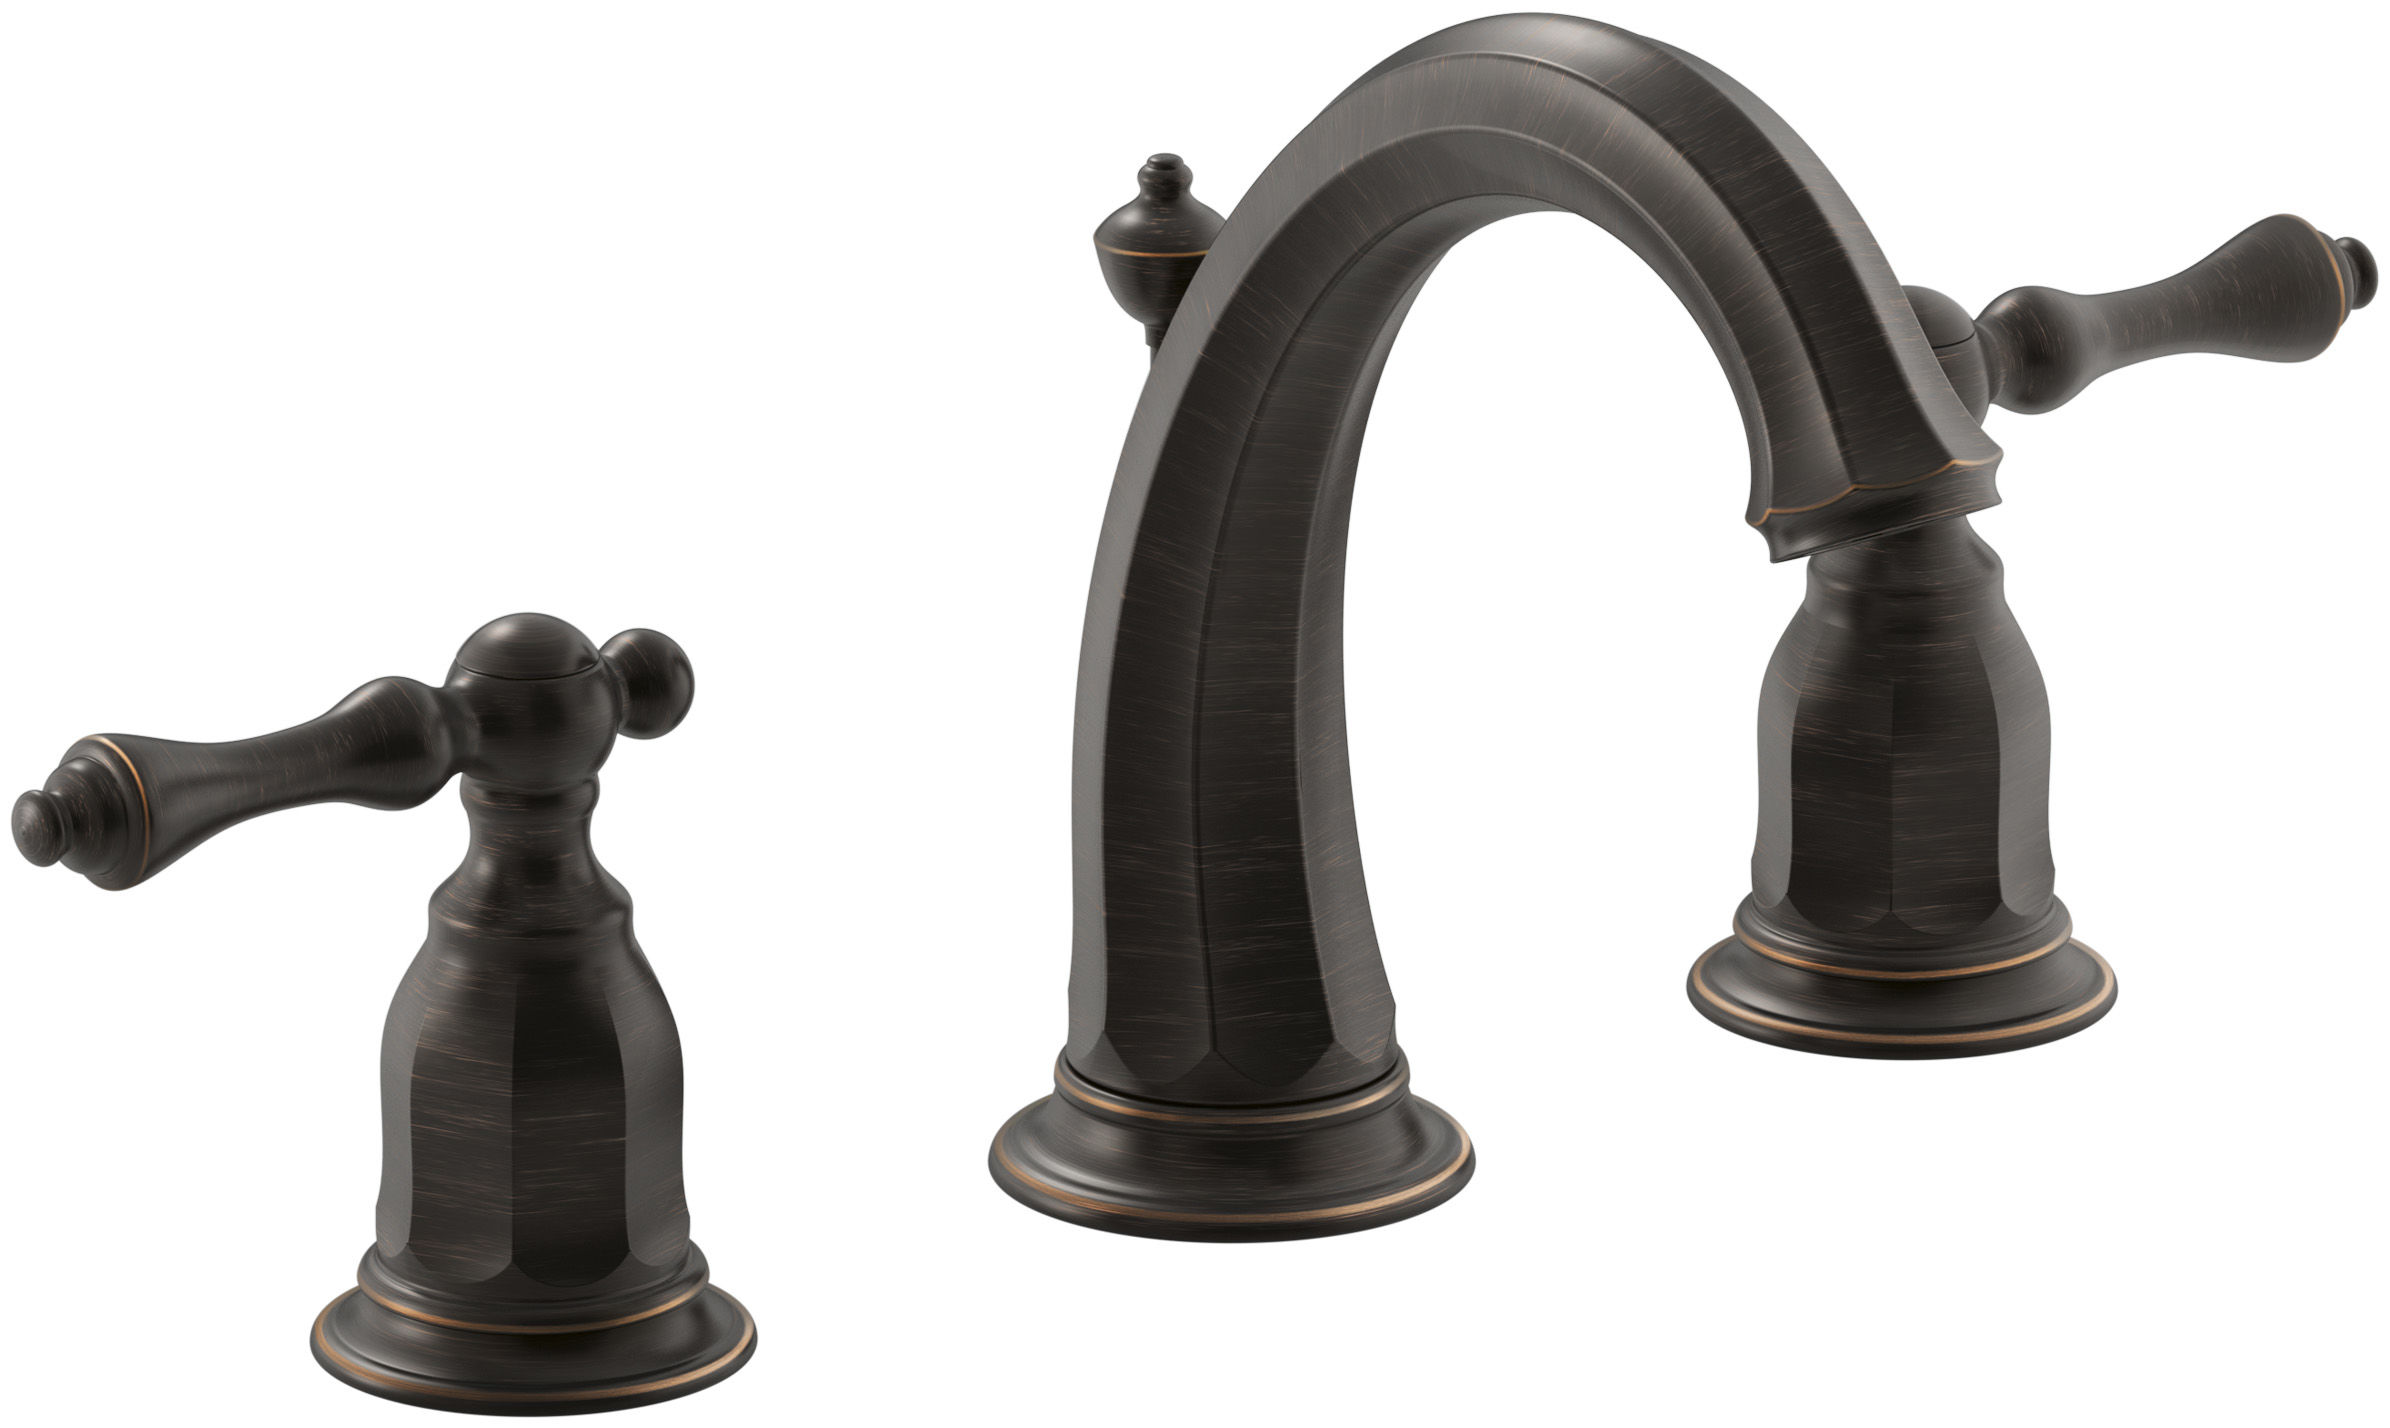 Kohler K 13491 4 2bz Oil Rubbed Bronze Kelston Widespread Bathroom Faucet With Ultra Glide Valve Technology Free Metal Pop Up Drain Embly